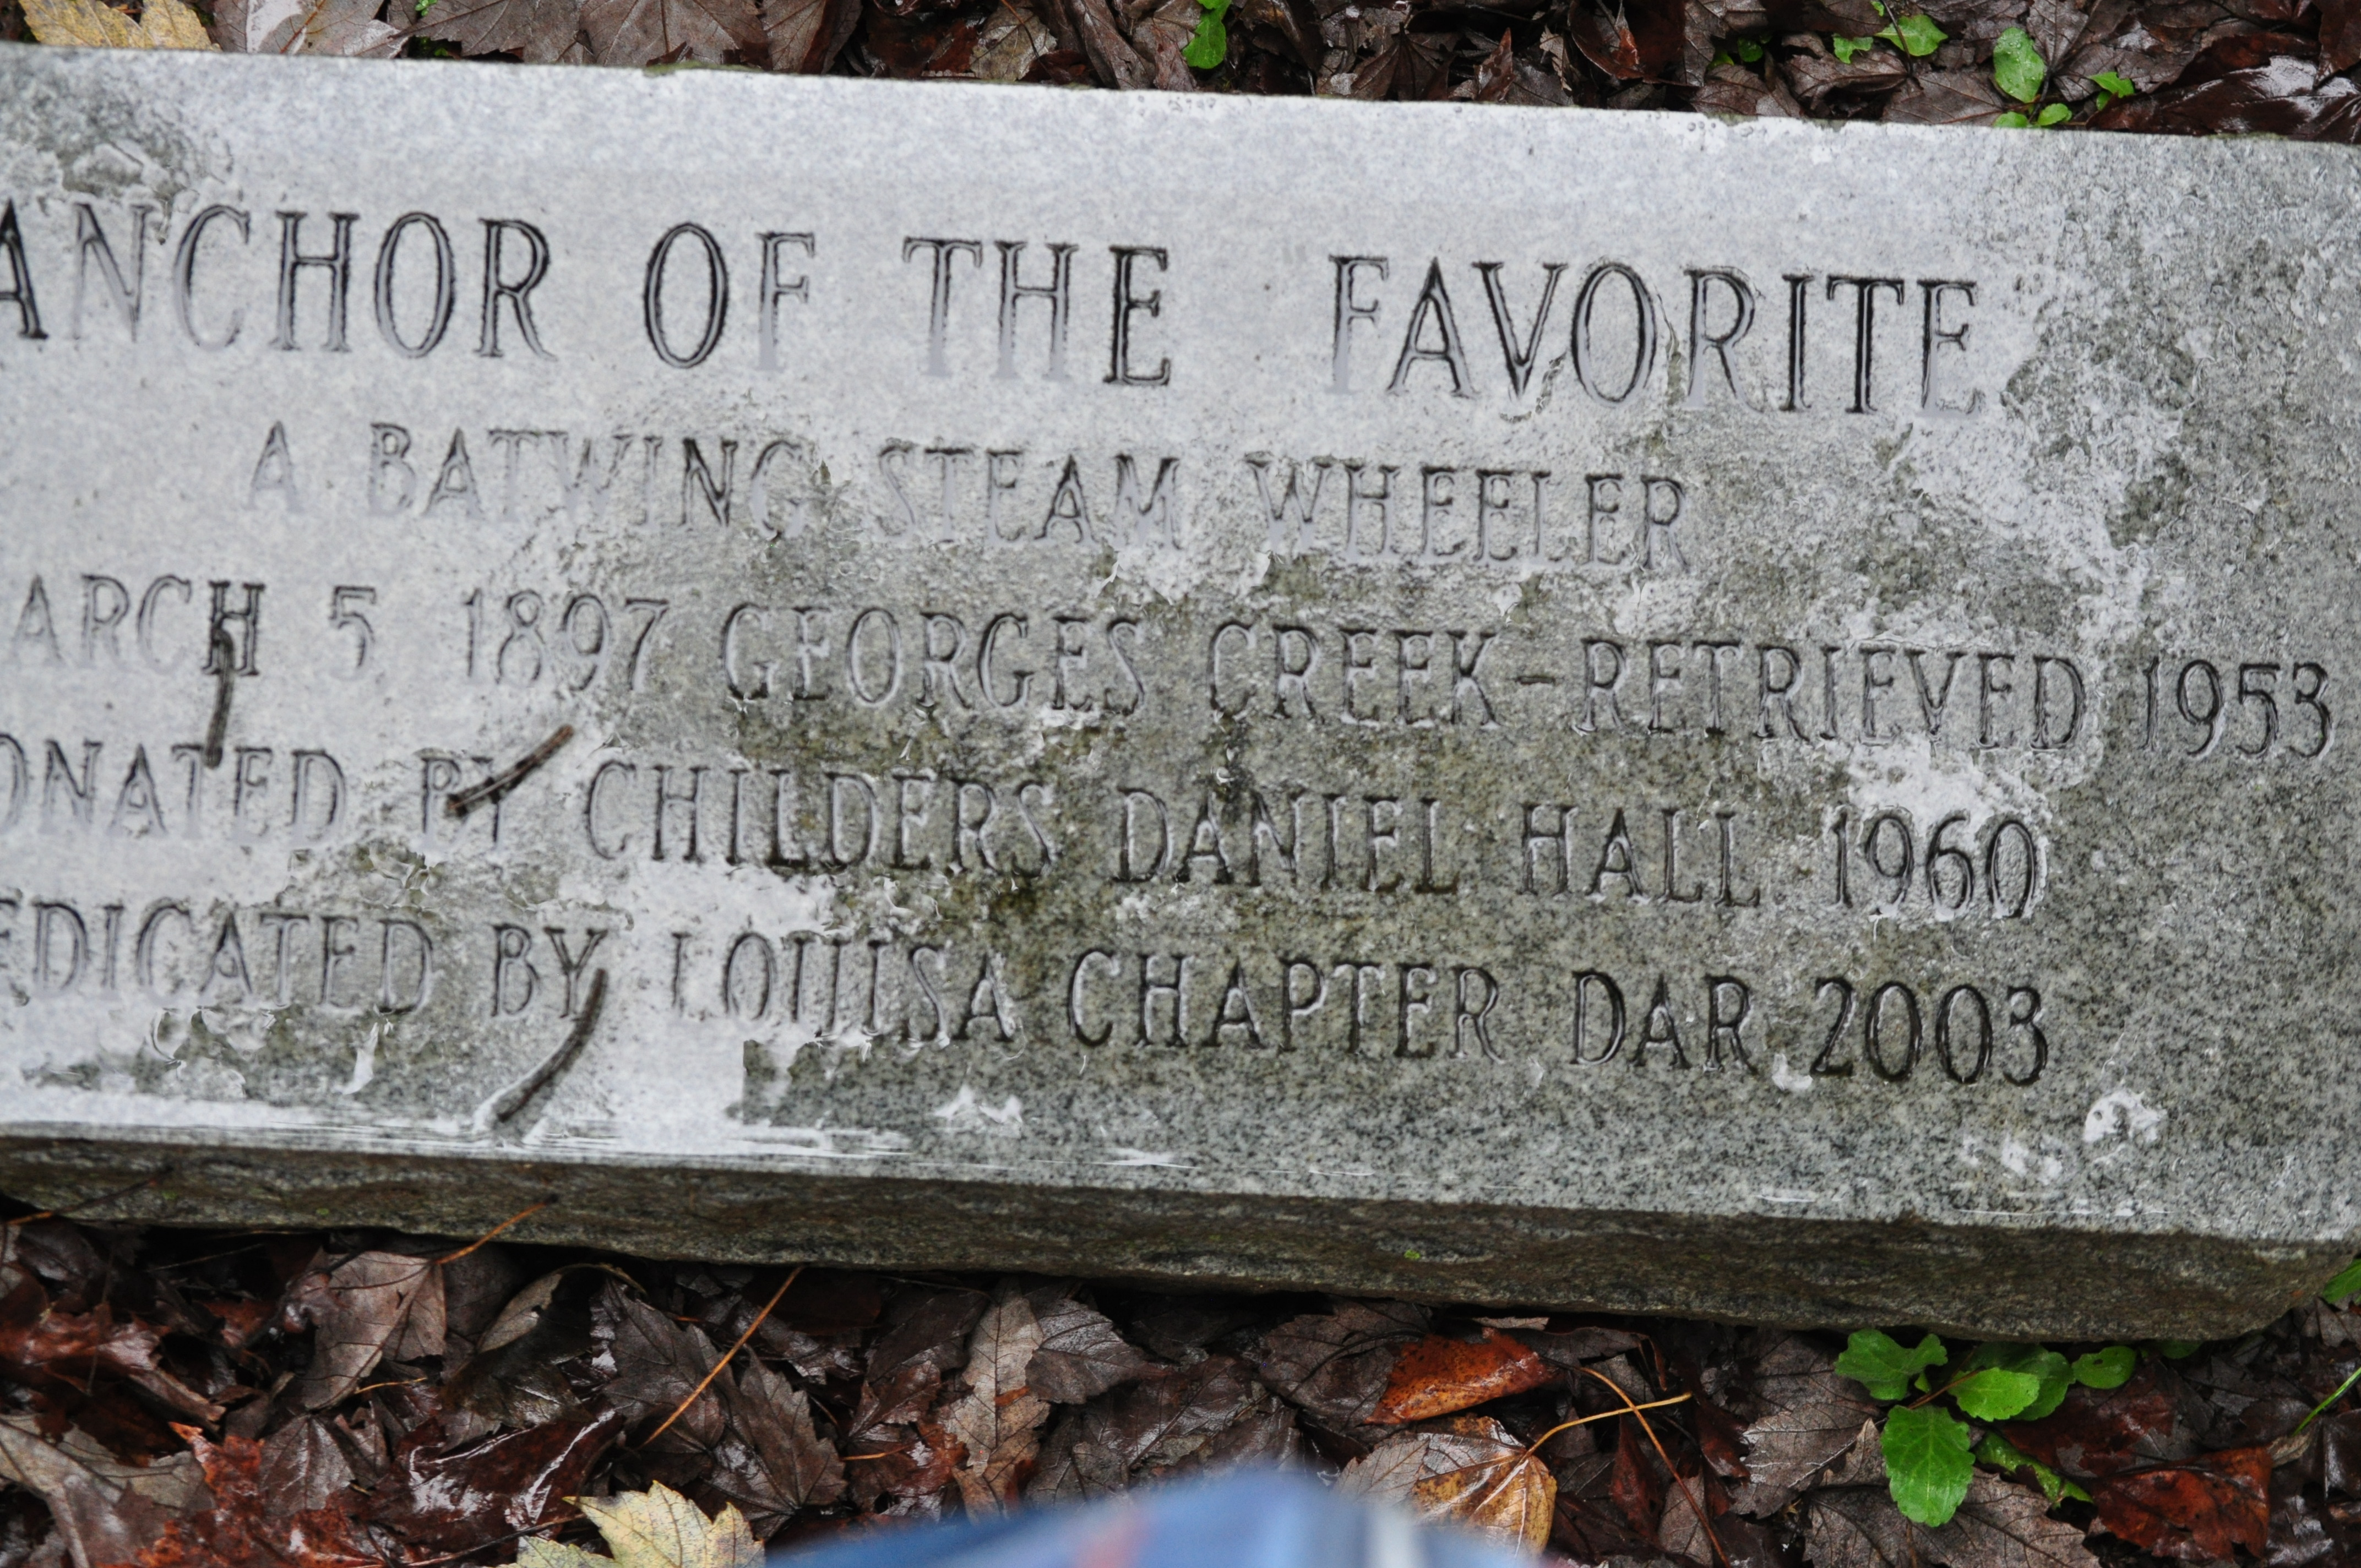 The Anchor from The Favorite A Batwing Steam Wheeler located in Louisa, KY Plaque